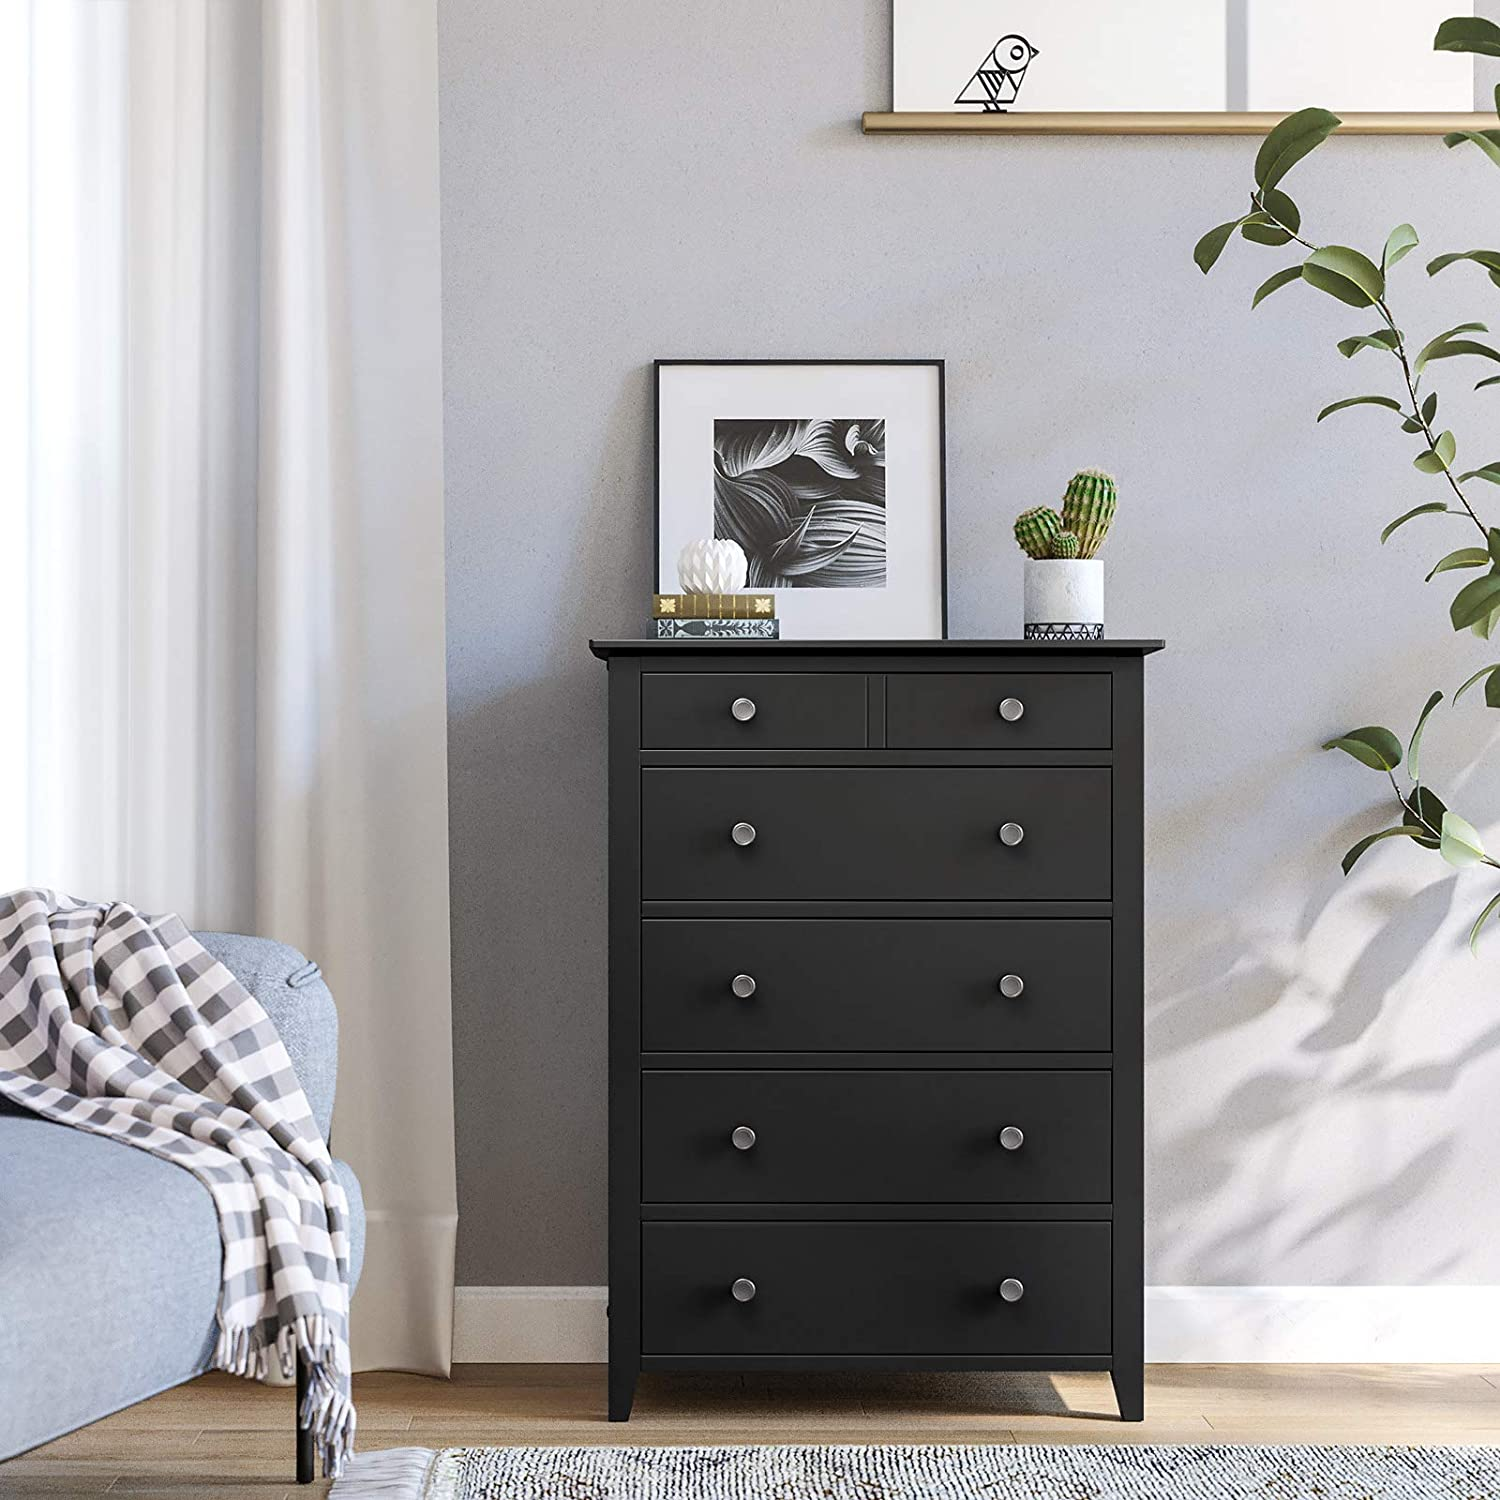 Storage Unit for the Bedroom Living Room Black URCD01BKV1 Pre-Installed Slide Rail VASAGLE Chest of Drawers Kid/'s Room Classic 5-Drawer Dresser with Solid Wood Frame Easy to Assemble